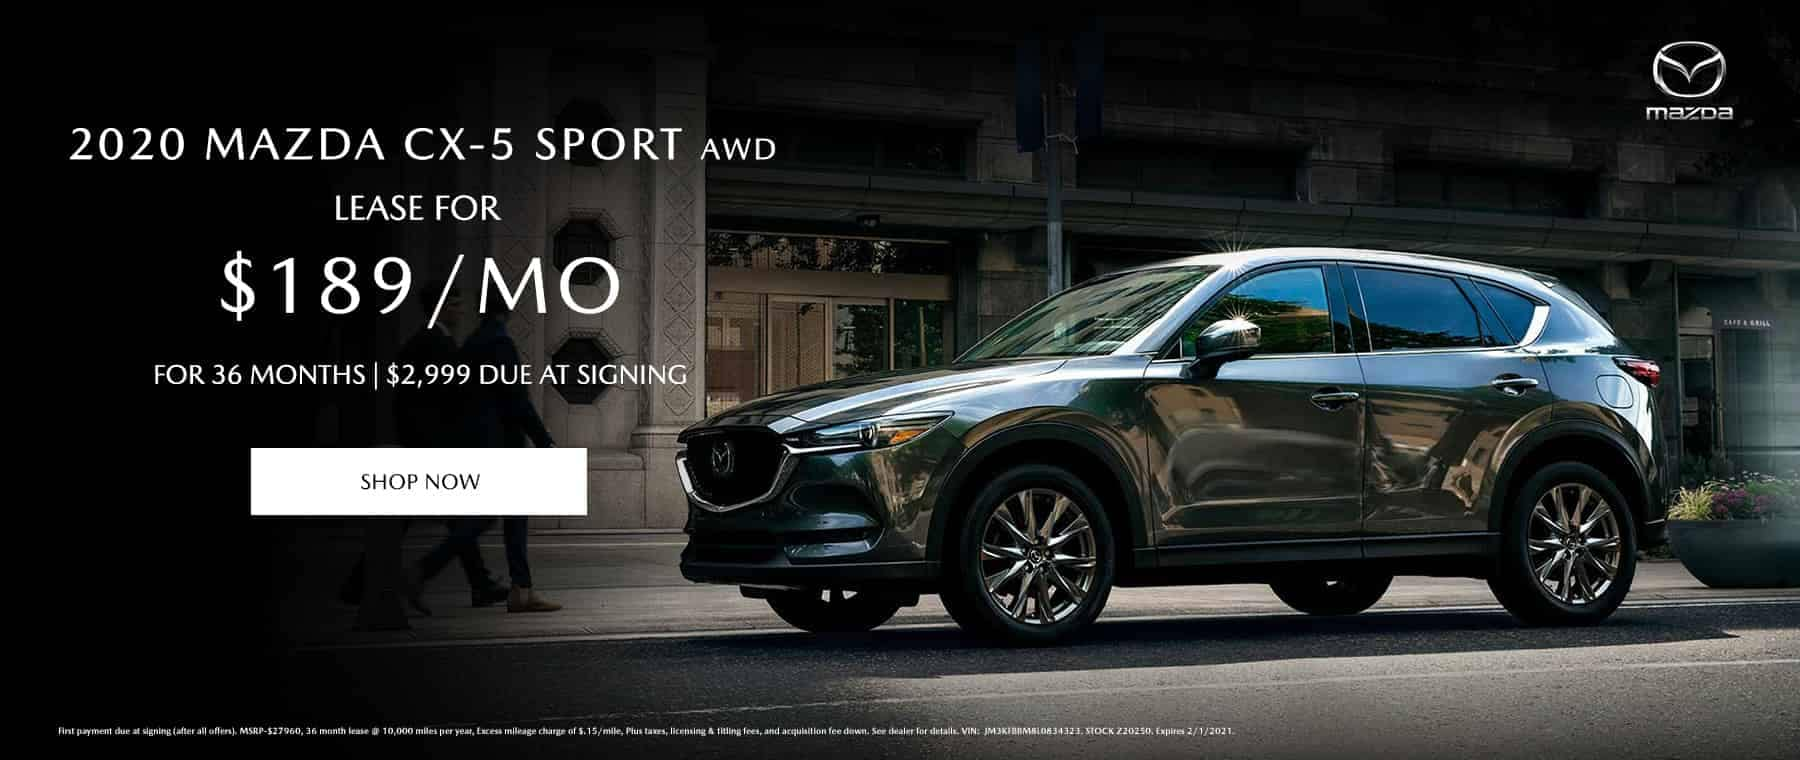 2020 Mazda CX-5 Sport AWD Lease $189/mo